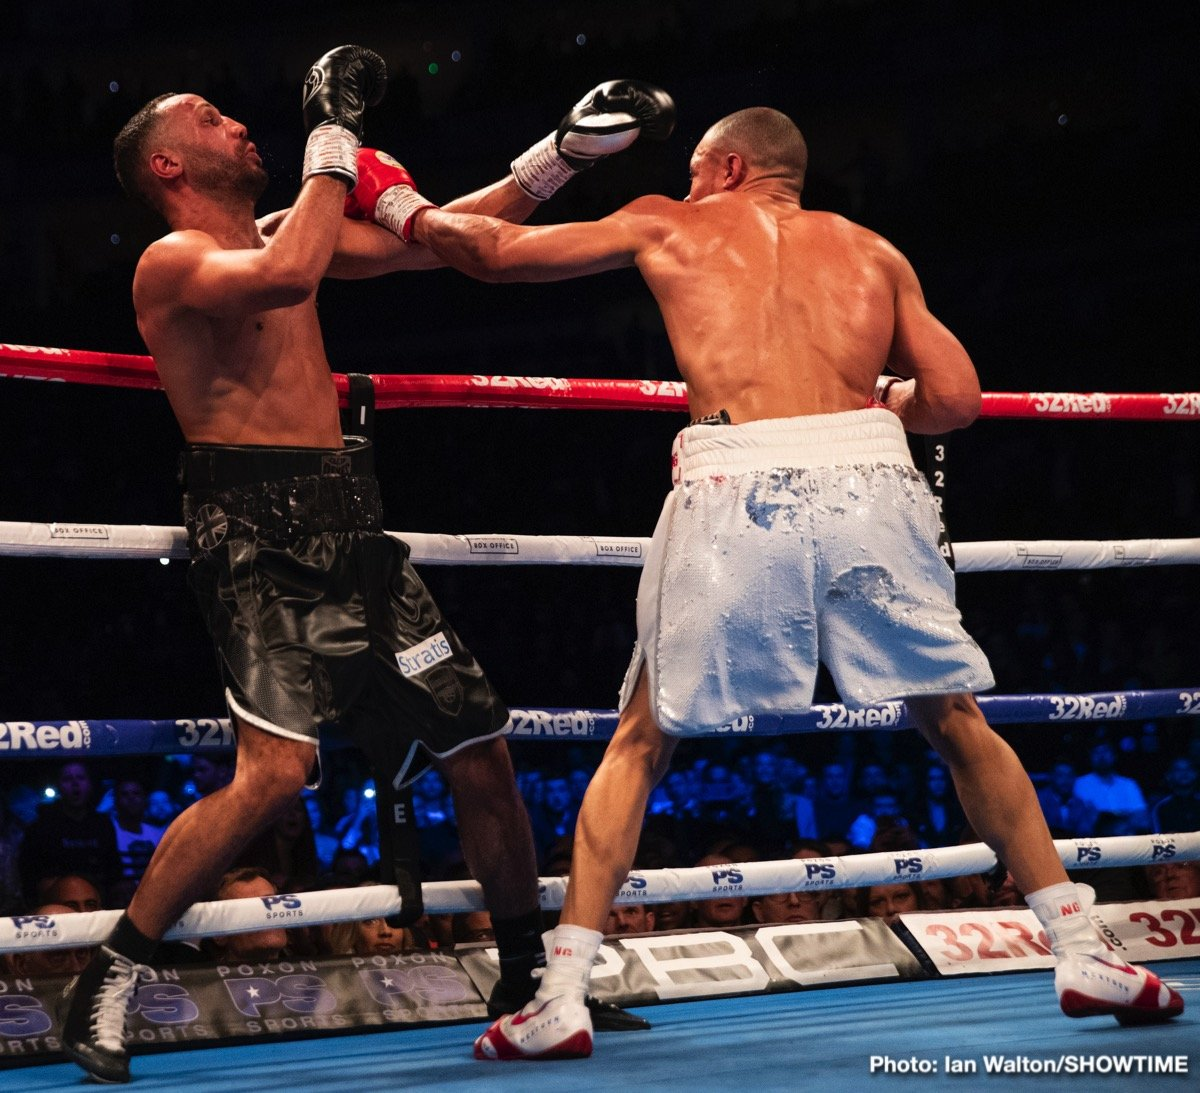 Chris Eubank Jr. earned a career-defining victory with a hard-fought unanimous decision over British rival and former two-time world champion James DeGale in a super middleweight grudge match Saturday on SHOWTIME from The O2 in London.